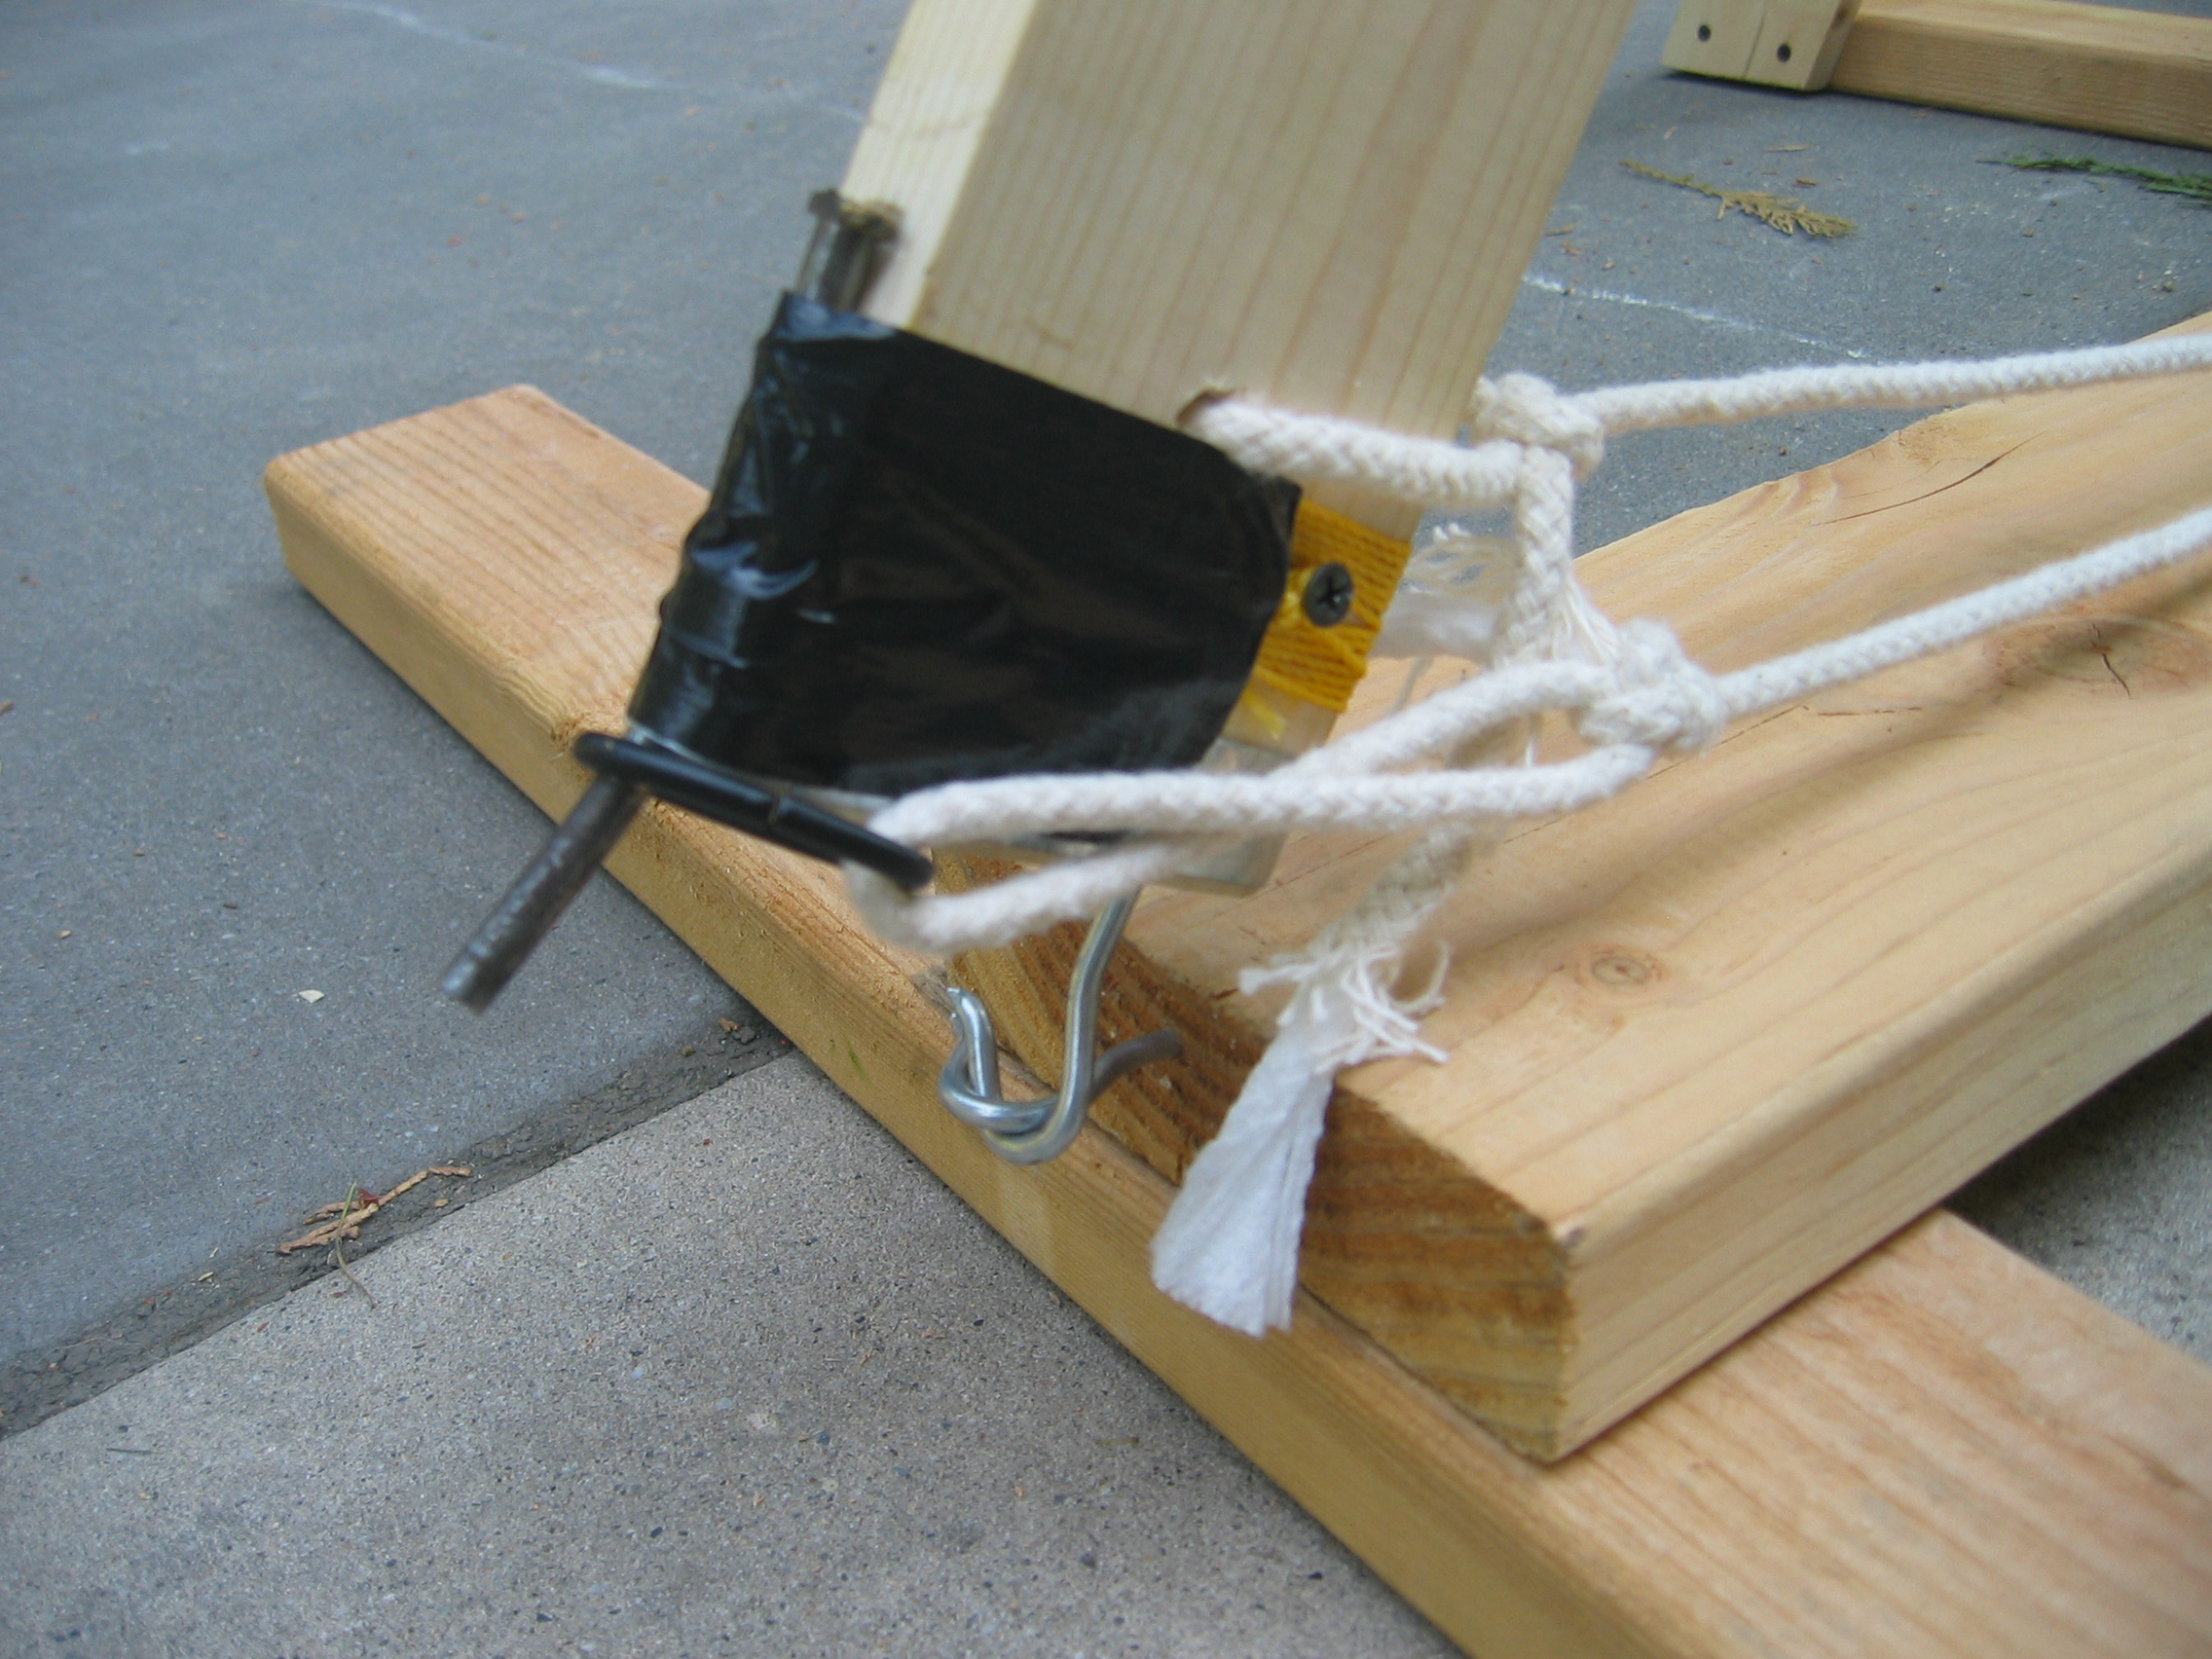 Throwing arm & sling release mechanisms